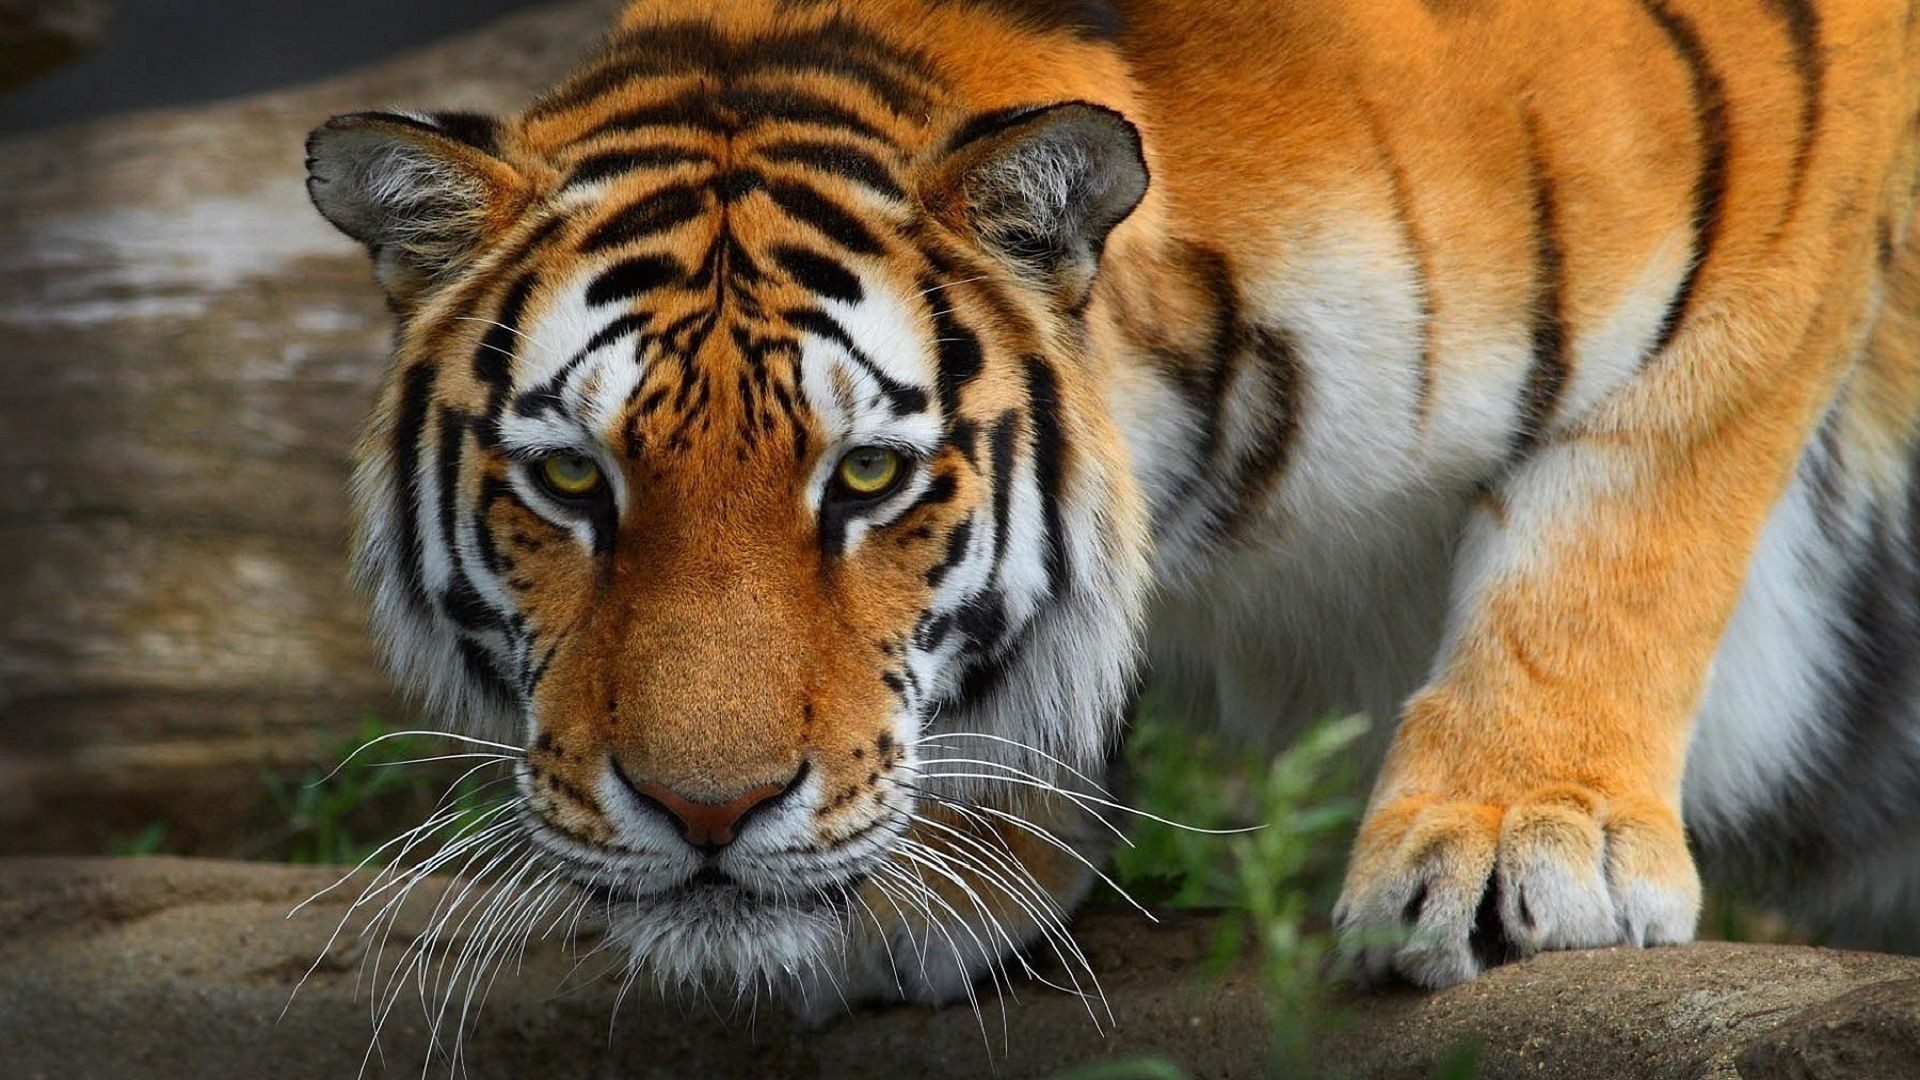 1920x1080 Animals Wallpaper Jungle Awesome Big Cats Tigers Snout Glance Animals Tiger  Wallpaper Pix Of Animals Wallpaper